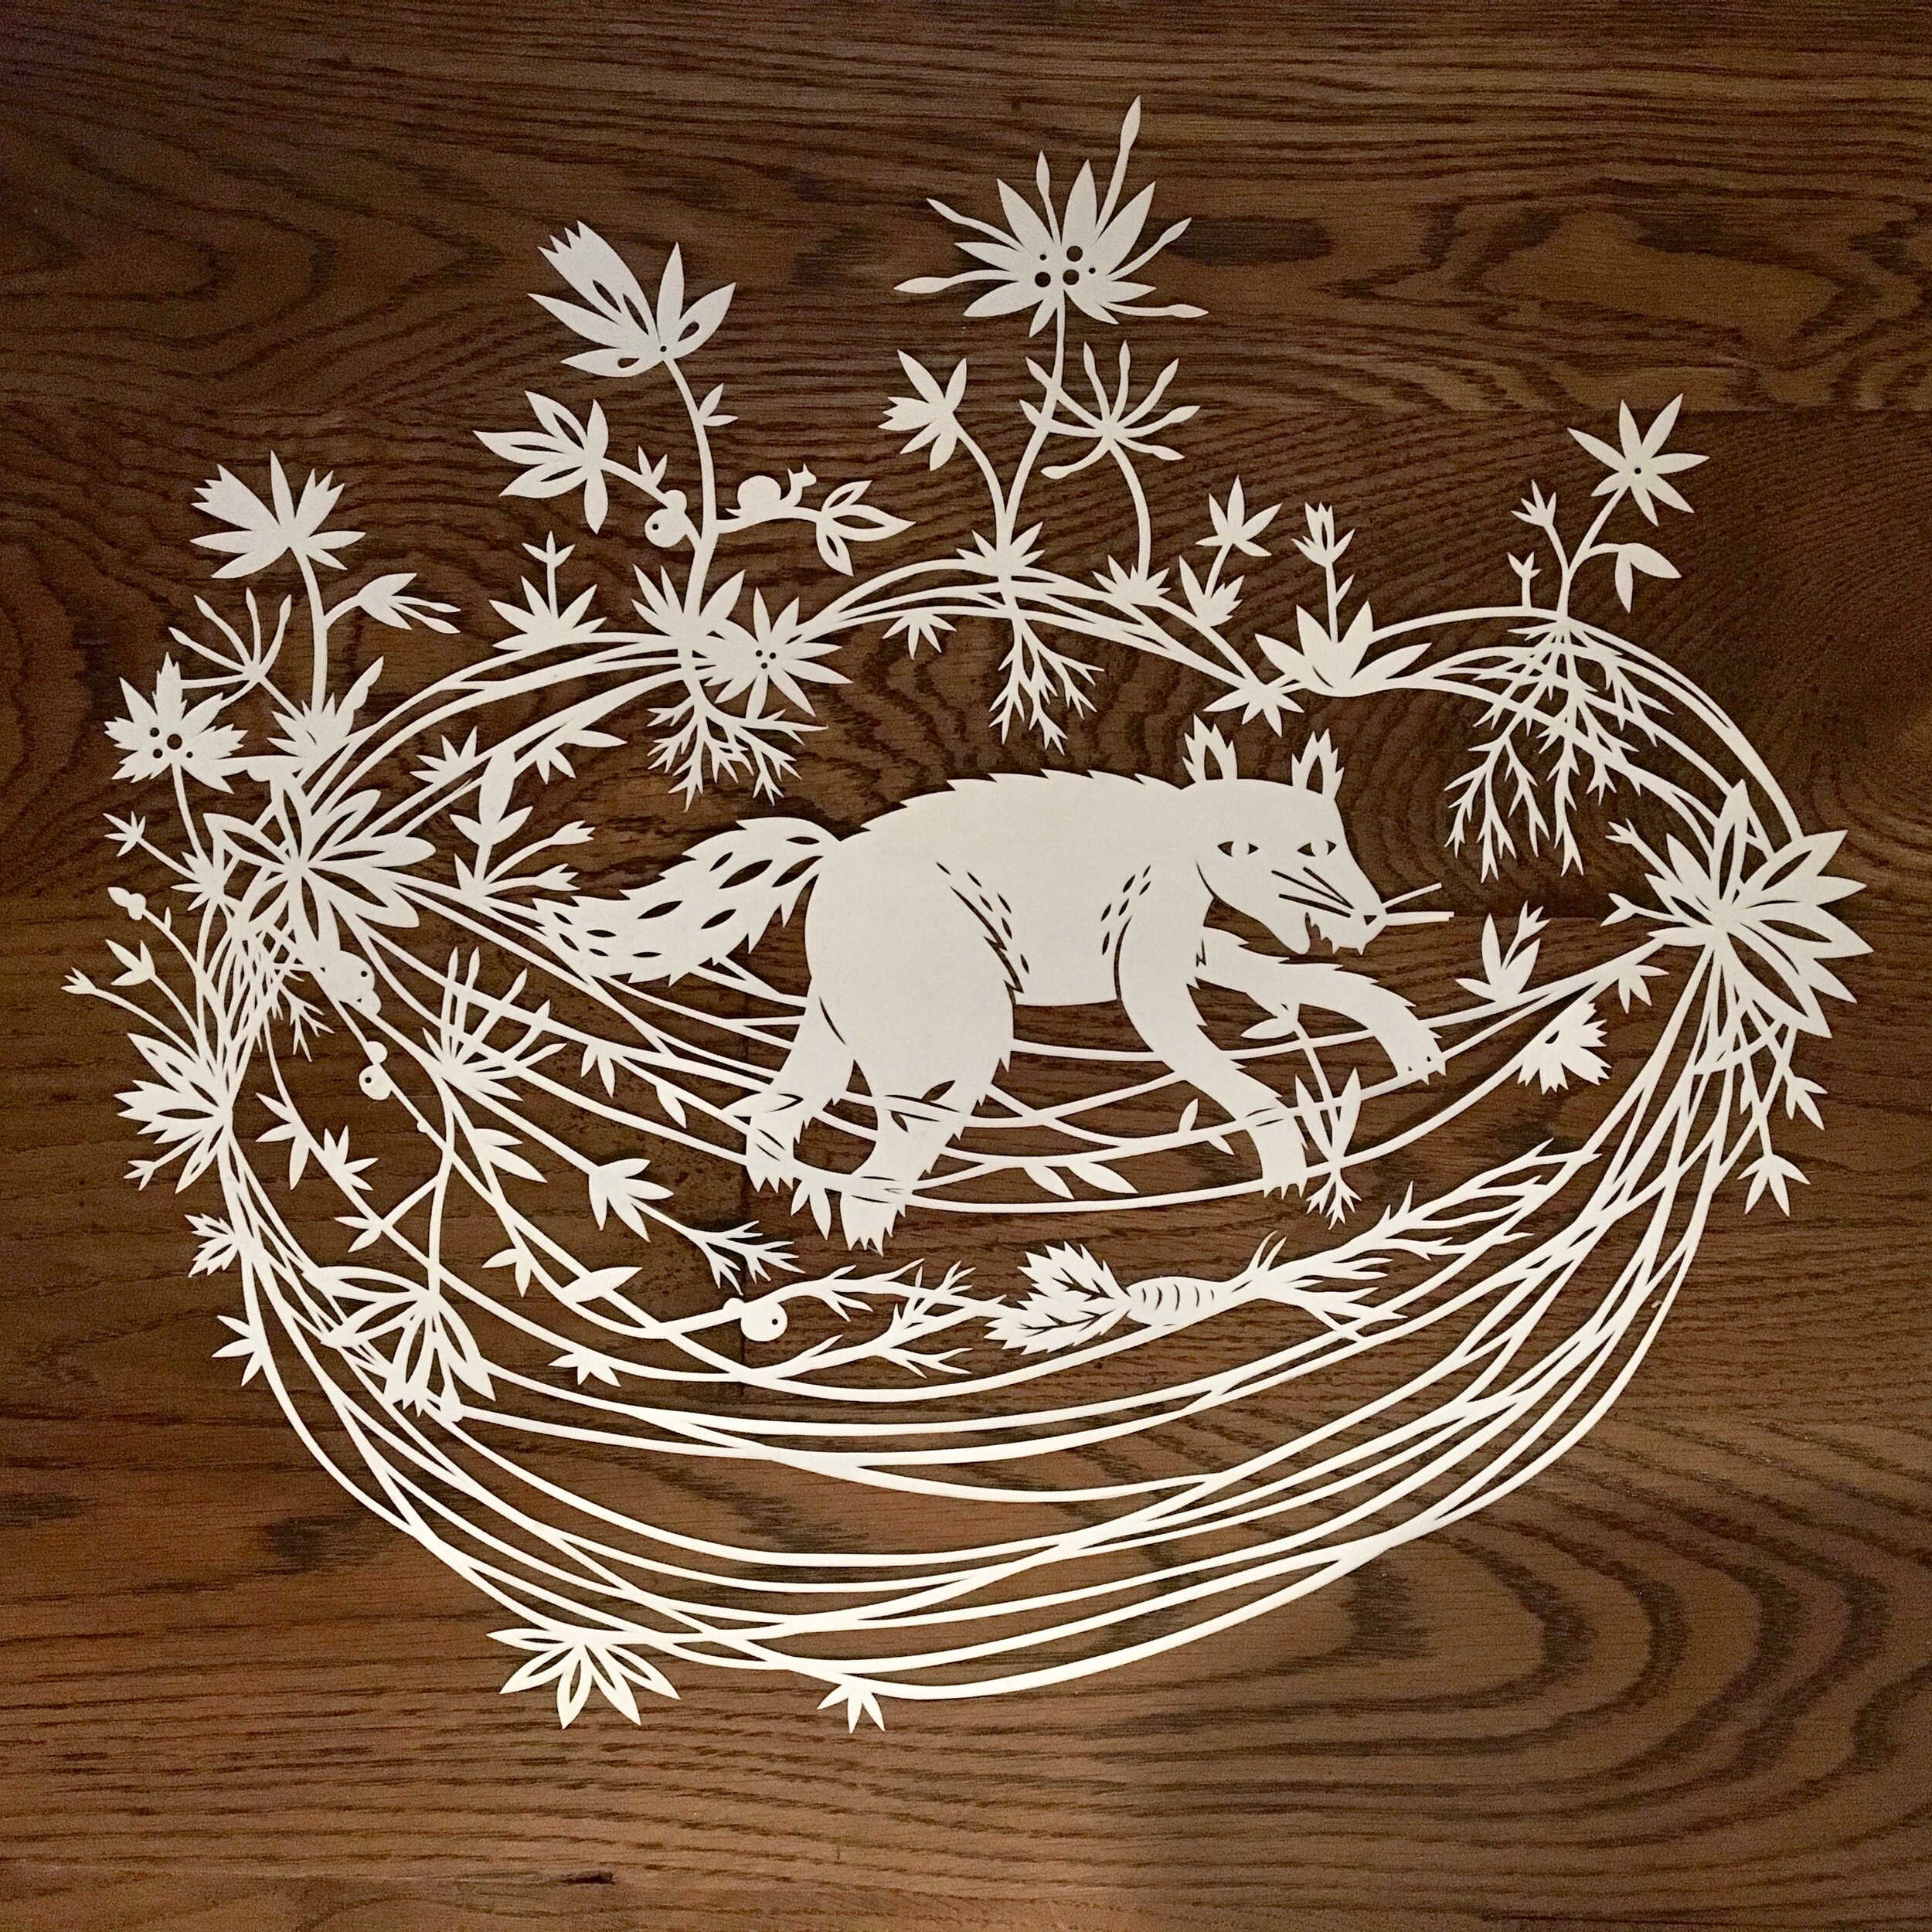 Wolf in Tangles  - 2018, approx. 16 x 18 inches, hand cut paper - work in progress